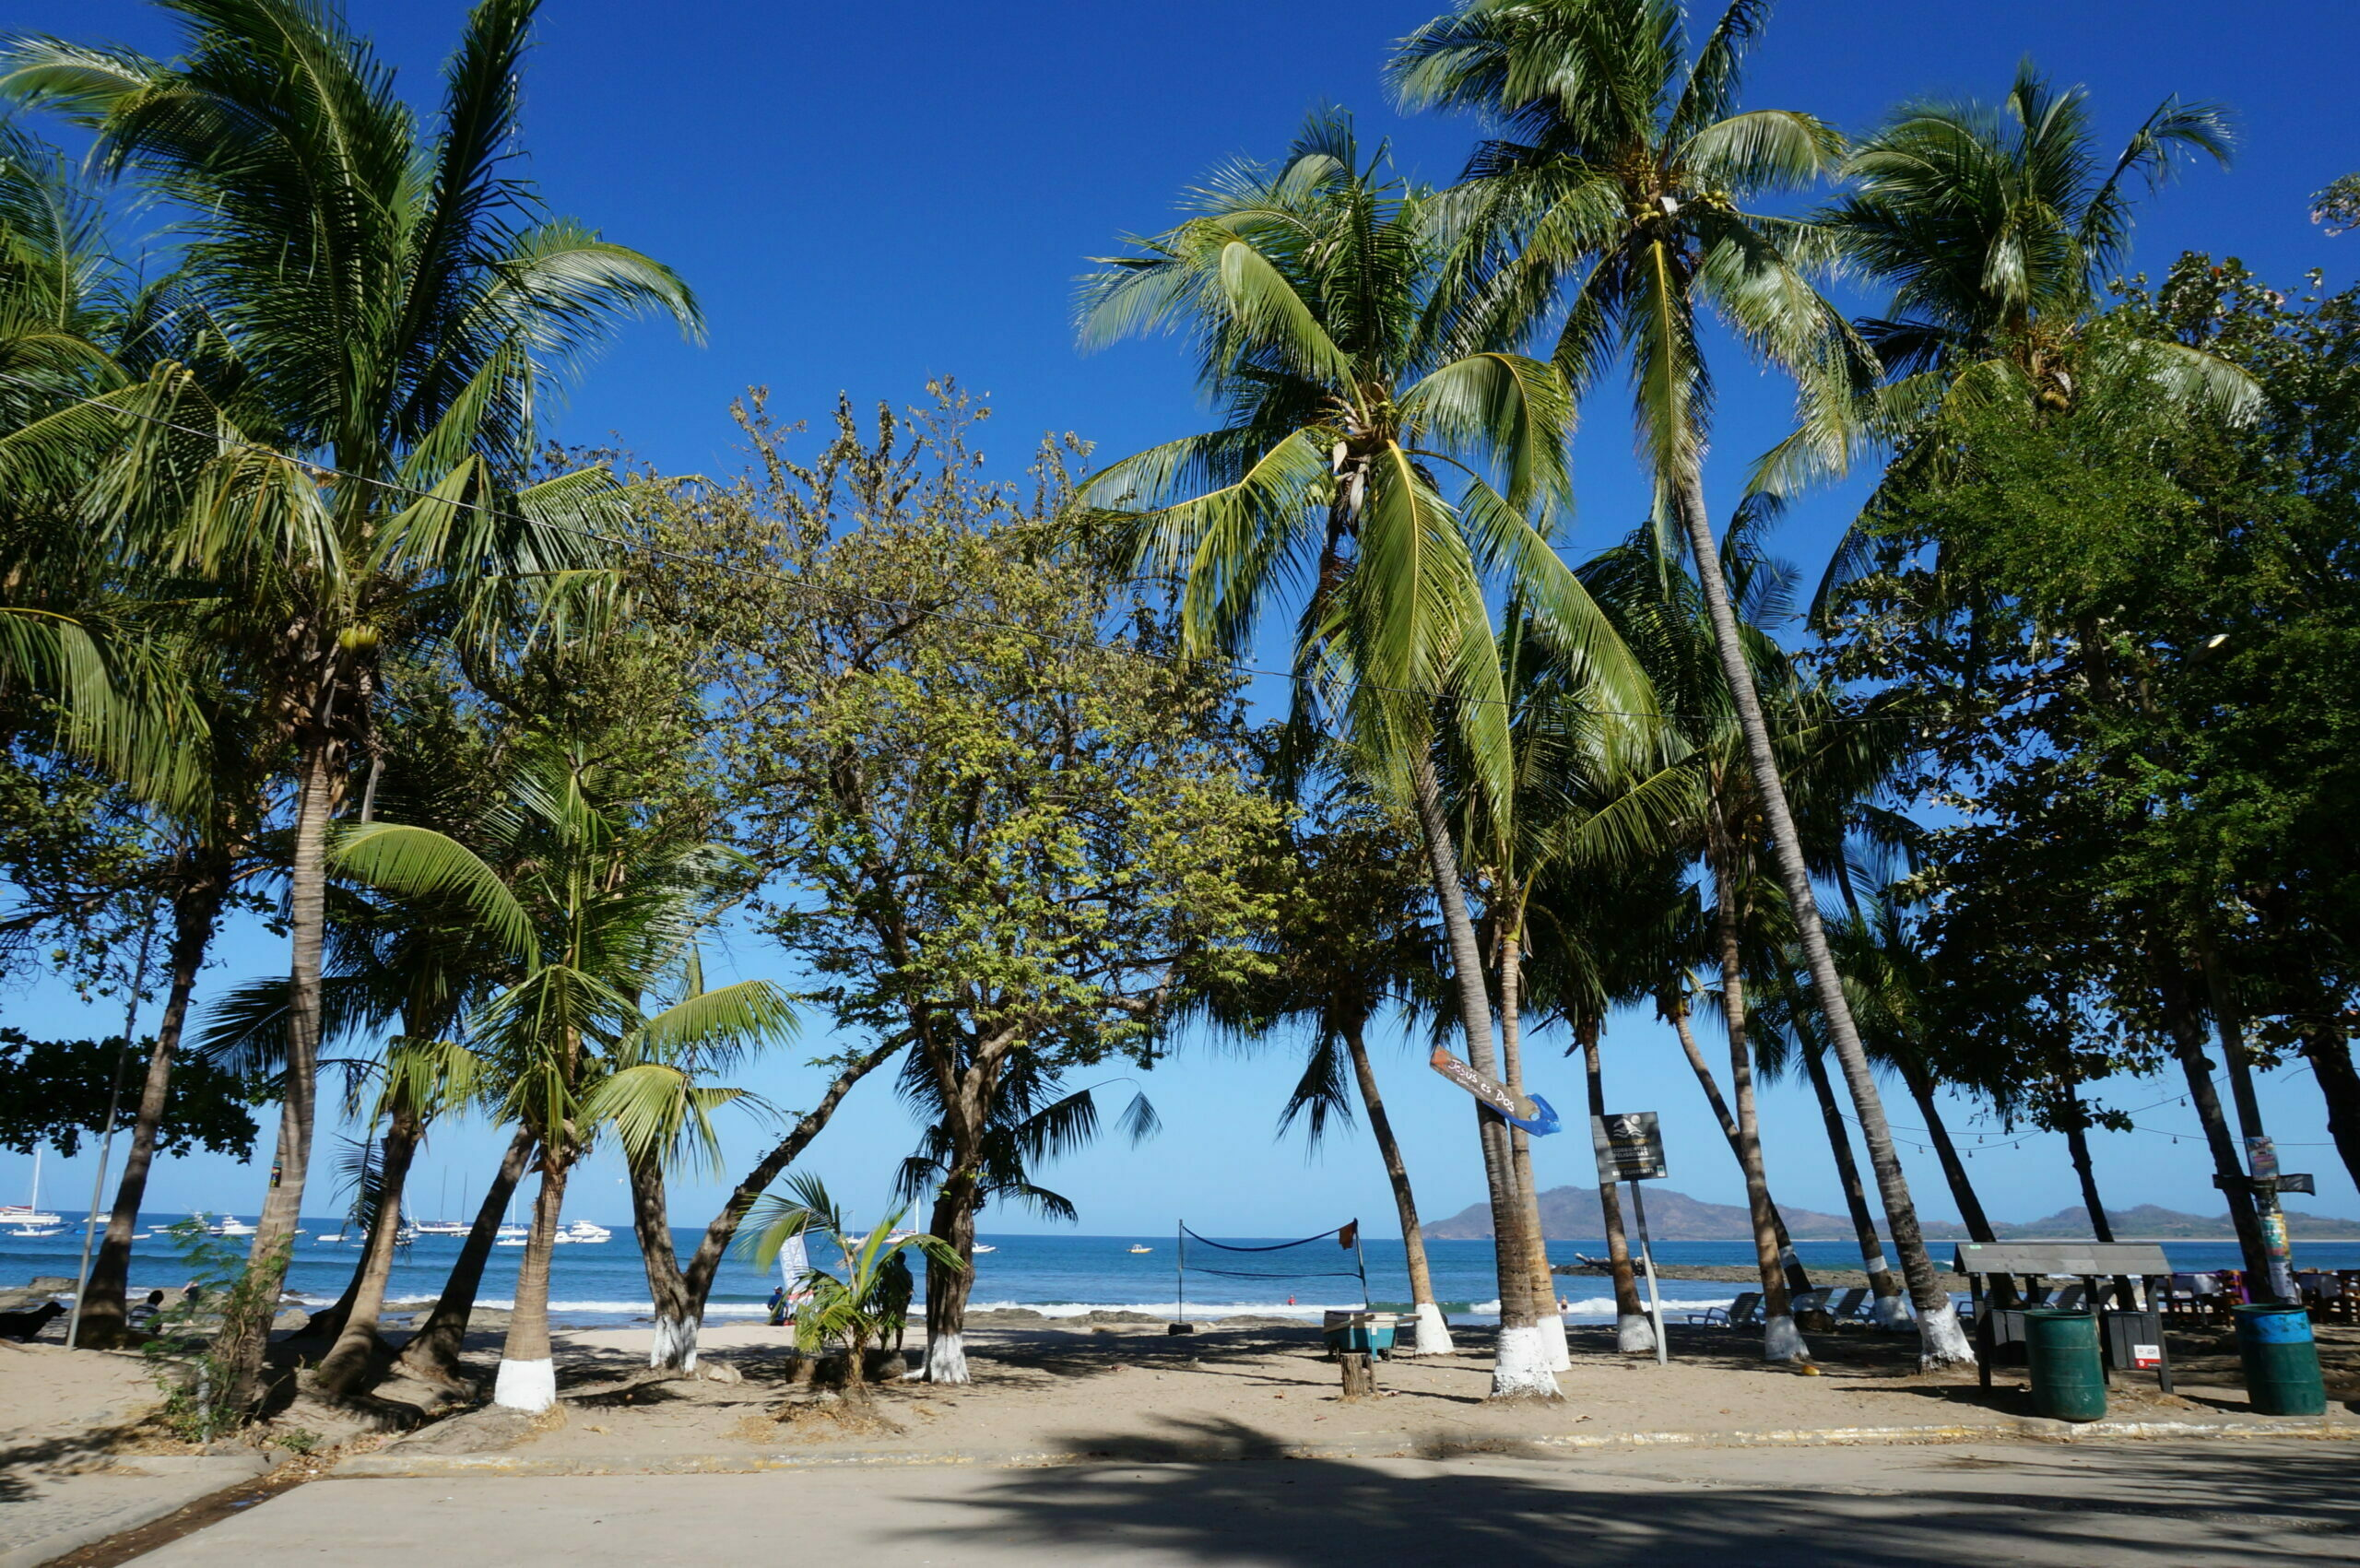 Great Beach Day trips from Tamarindo Heading North